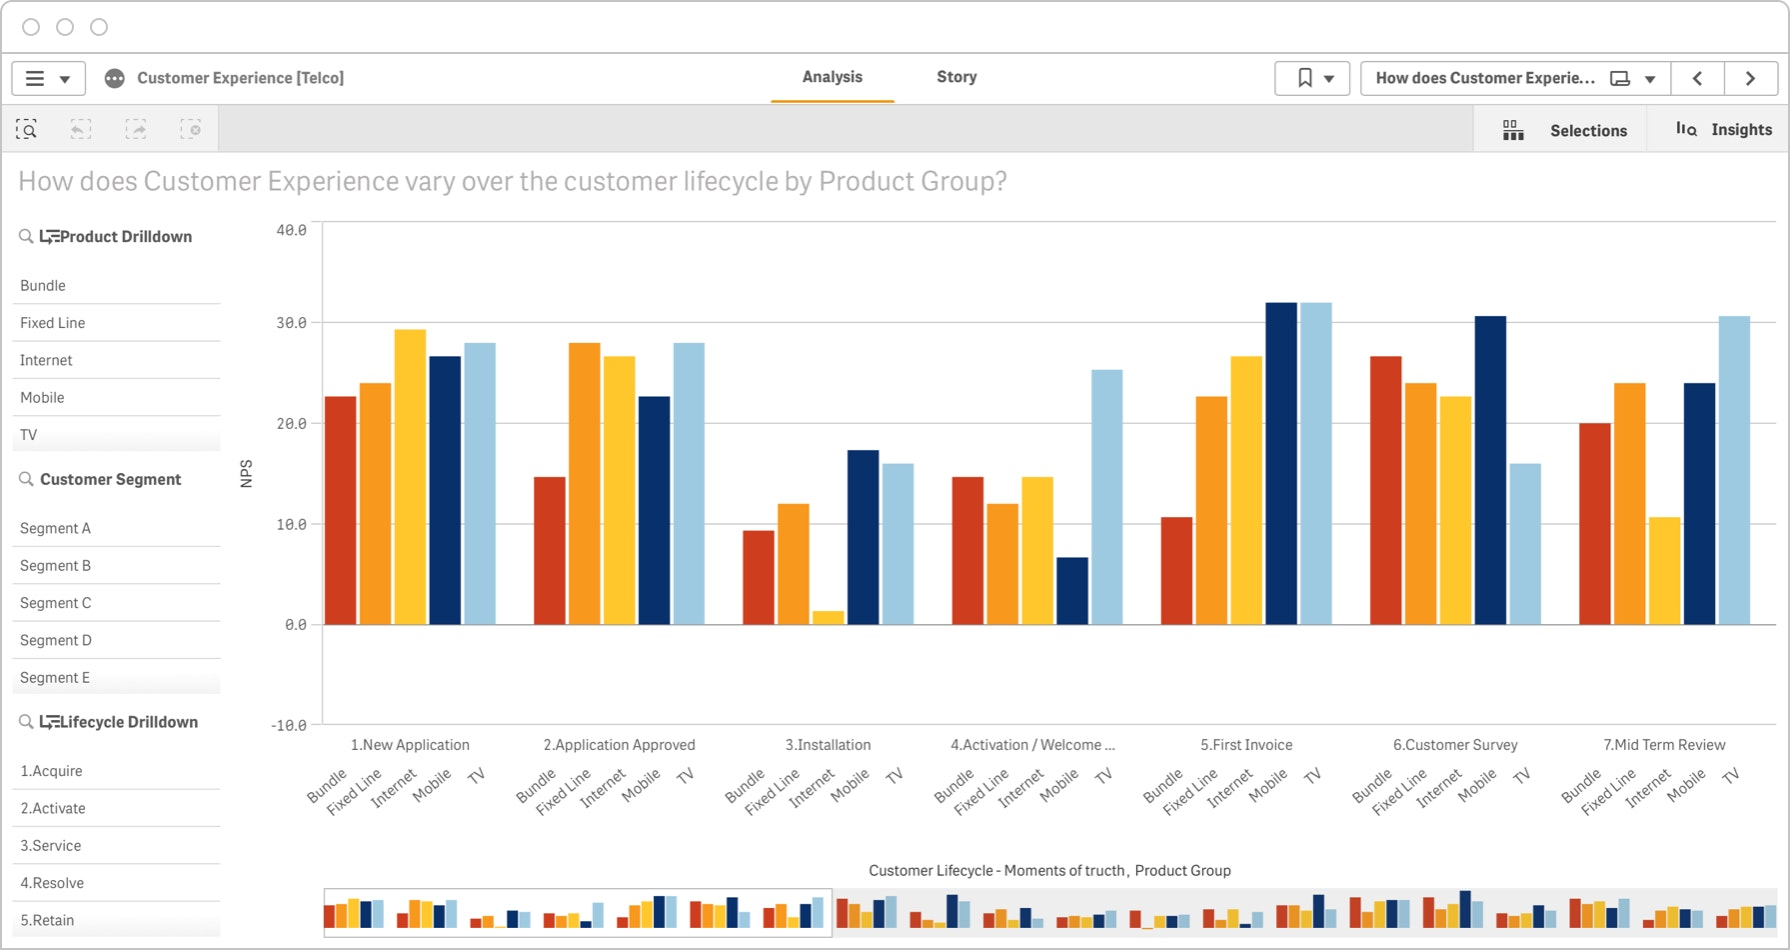 The customer lifecycle dashboard provides a complete picture of the customer experience across phases.